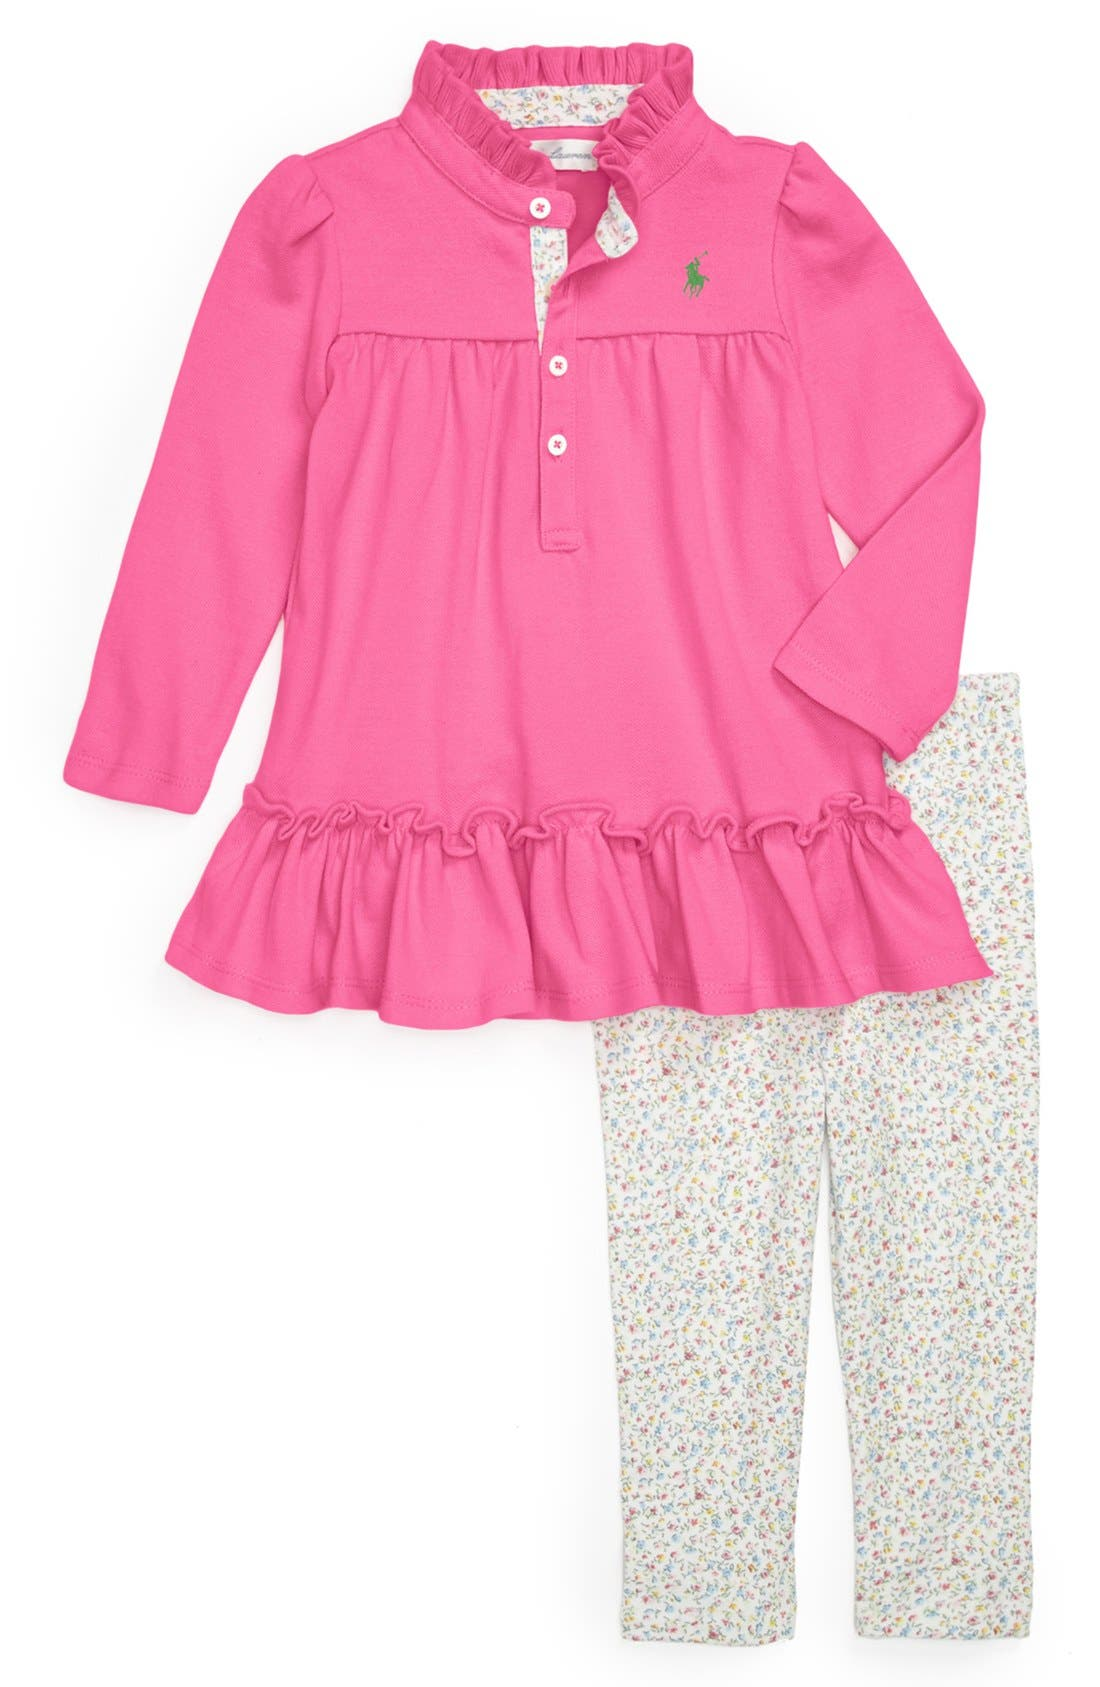 Alternate Image 1 Selected - Ralph Lauren Dress & Leggings (Baby Girls)